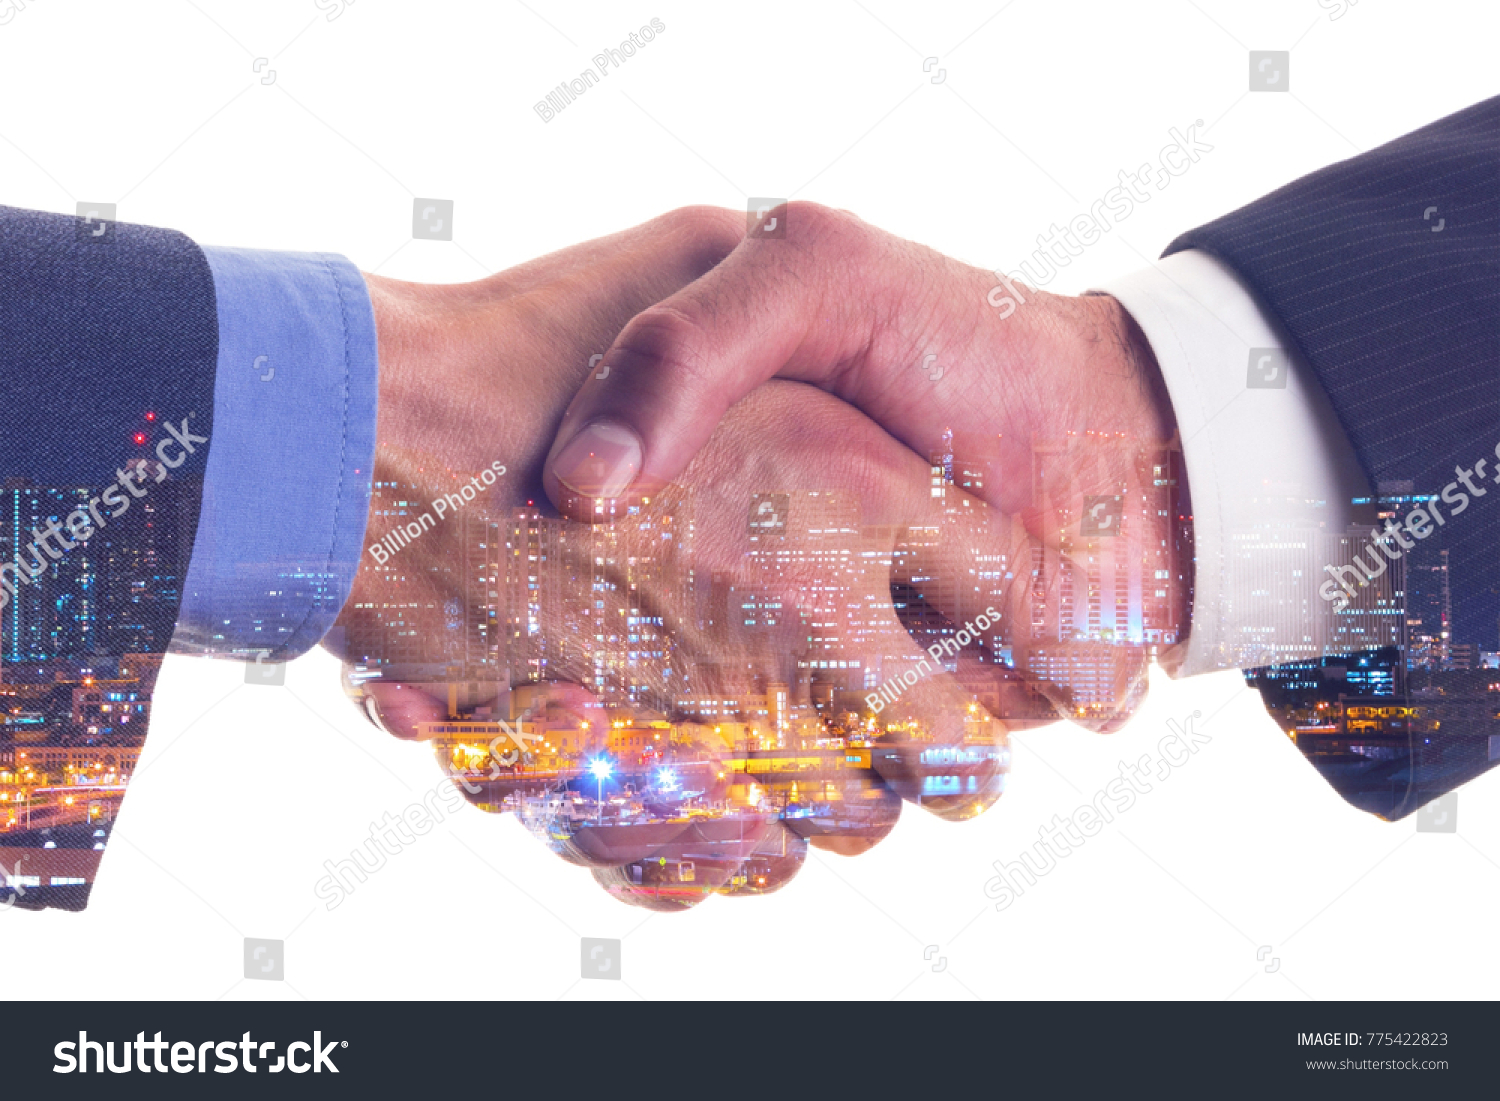 Interacial Great interacial hand shaking stock photo 775422823 - shutterstock